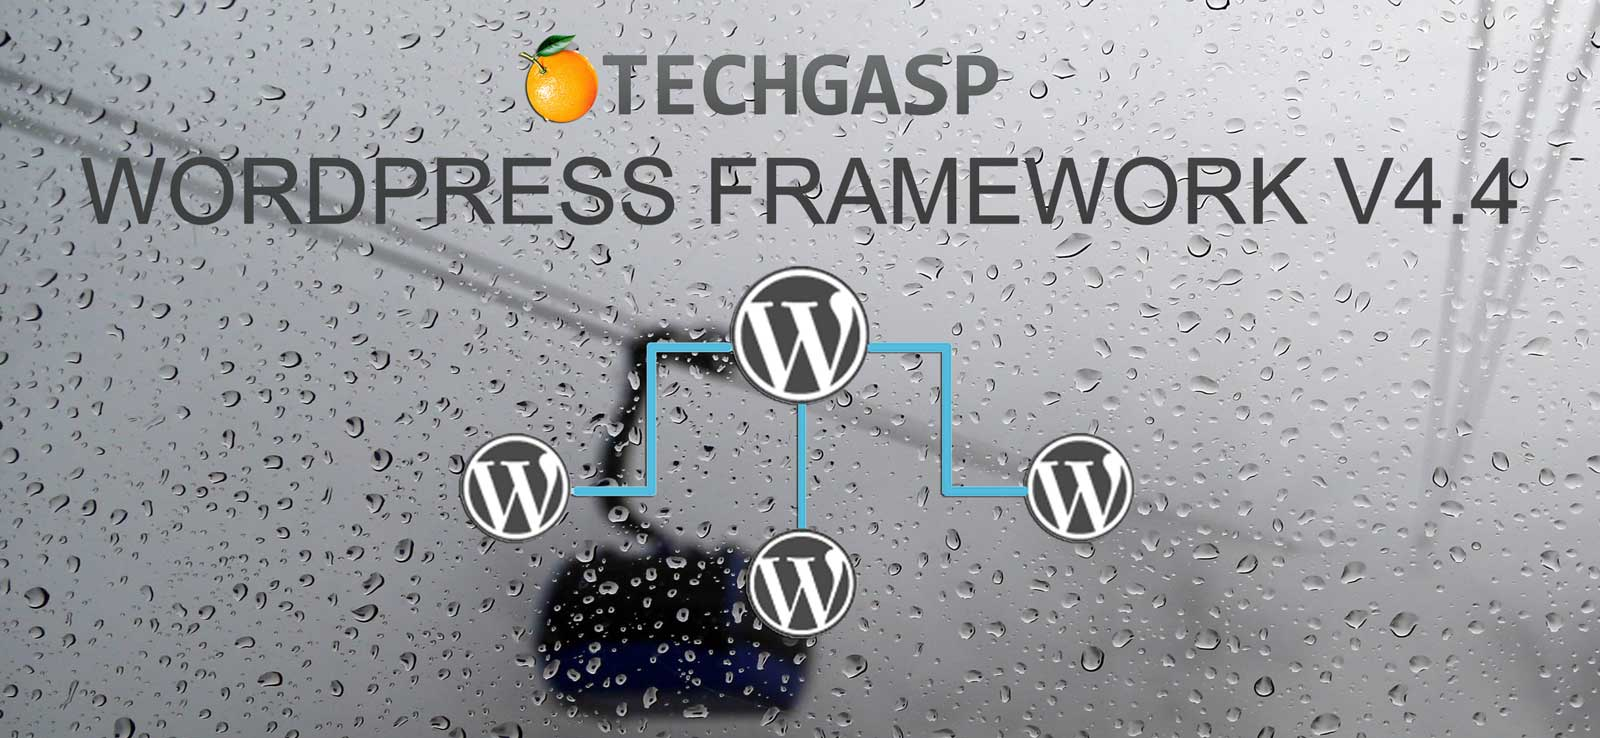 TechGasp WordPress Framework V4.4